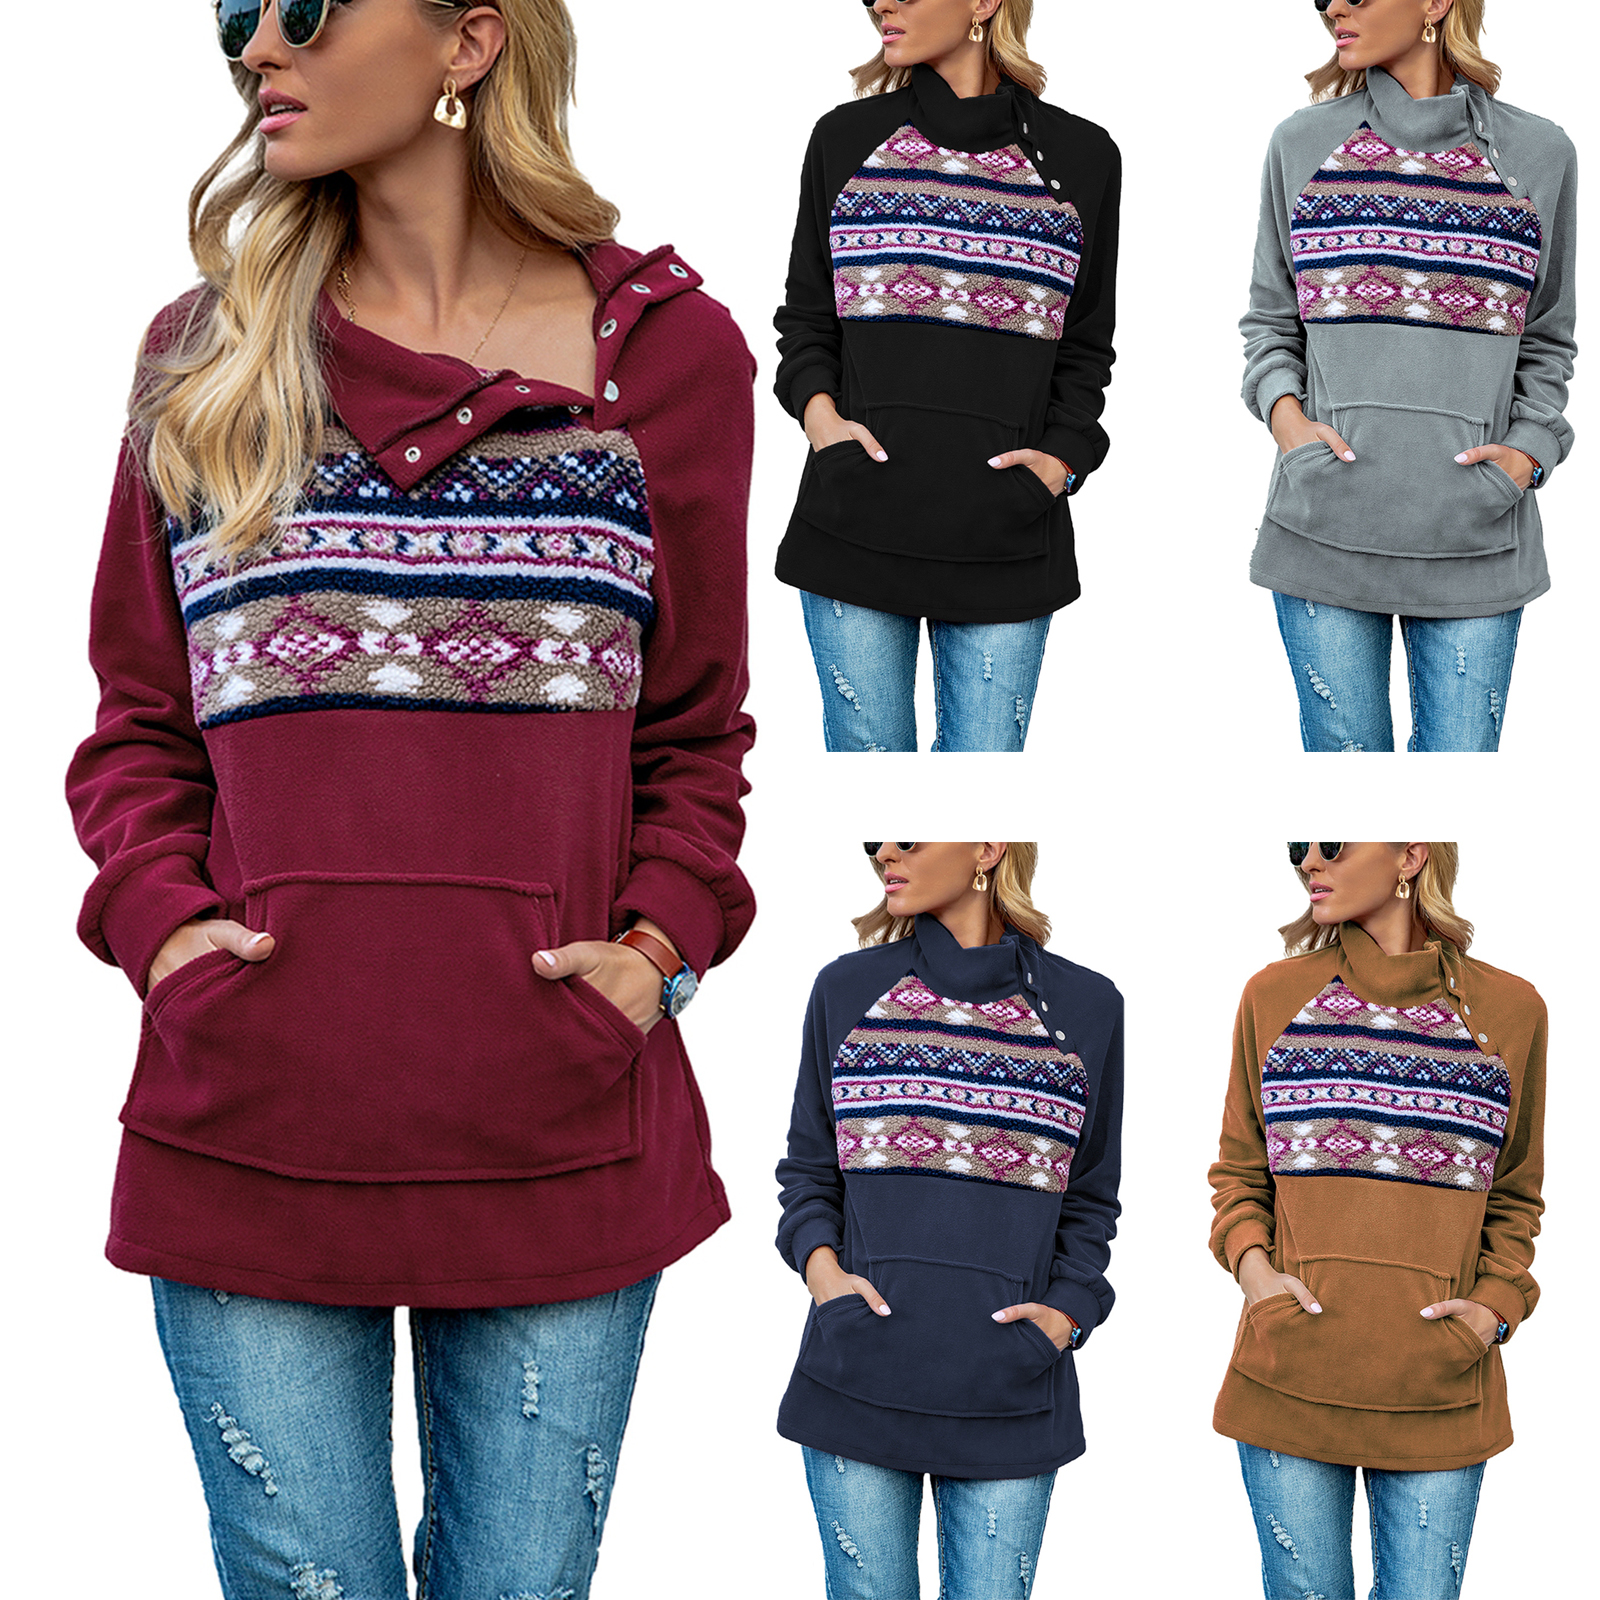 Women's Loose Sweatshirts, Casual Long Sleeve Turtleneck Button Pullover Tops with Pocket